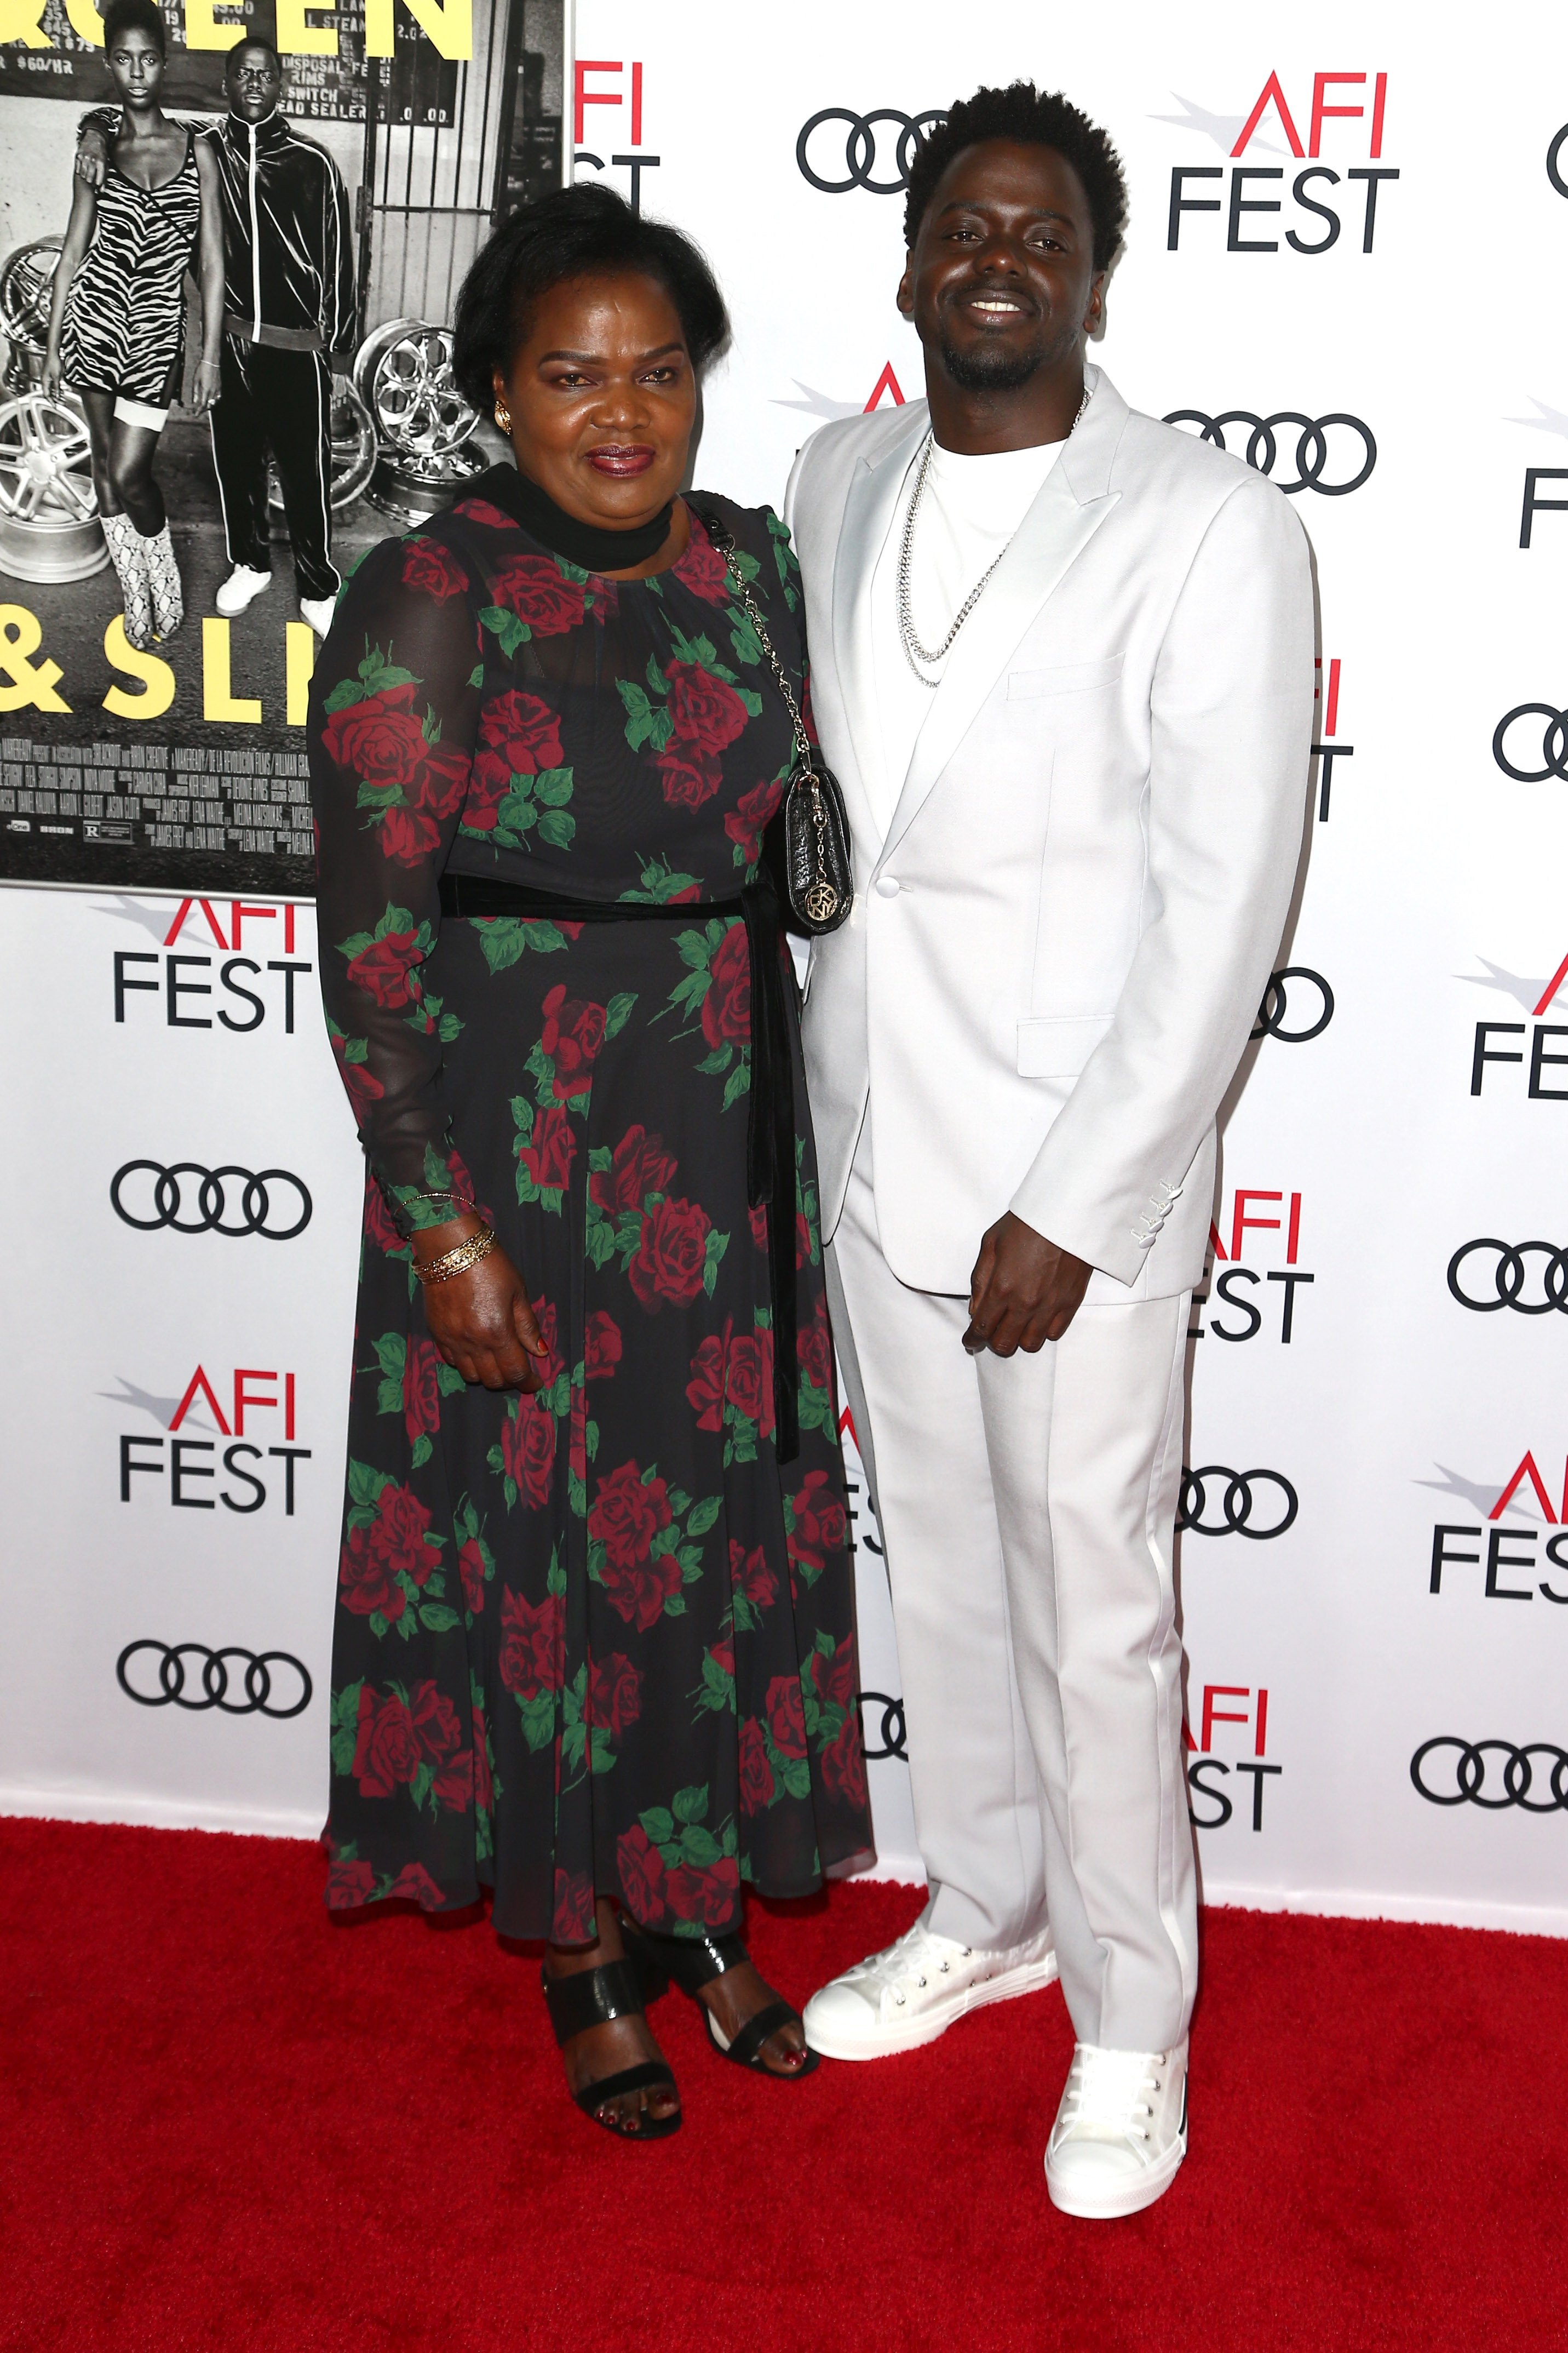 """Daniel Kayuula and his mother, Damalie Namusoke, pictured at  AFI FEST 2019 Presented By Audi premiere of """"Queen & Slim,"""" 2019. 